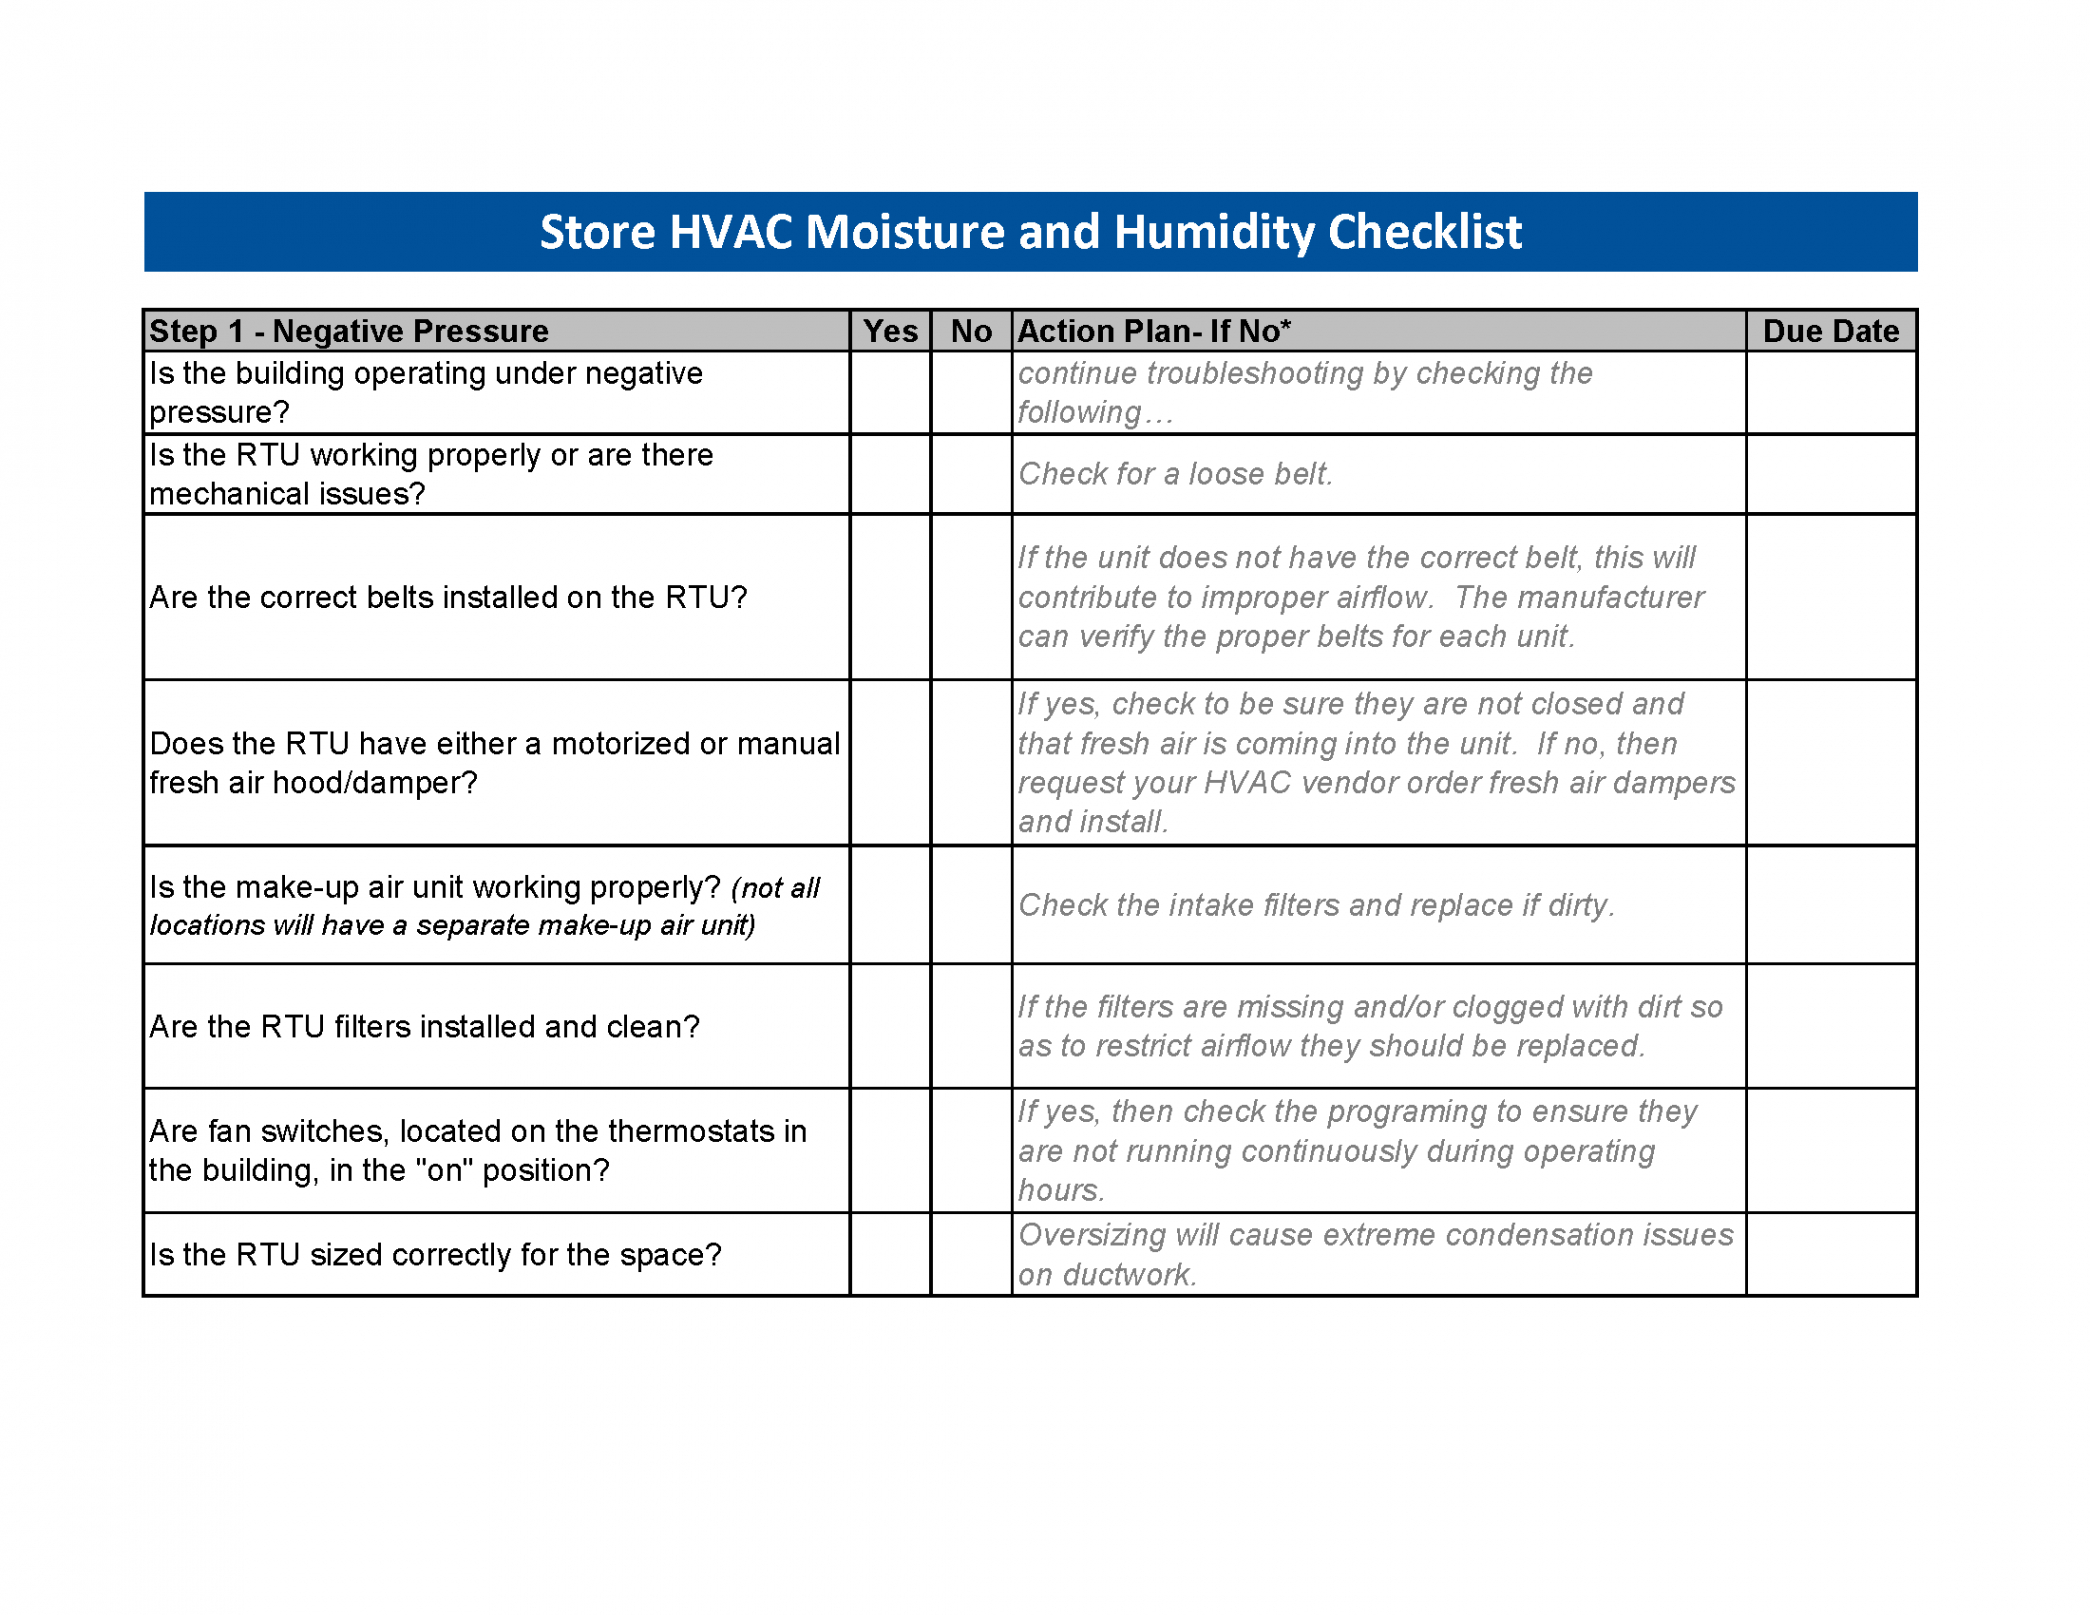 free prsm's moisture and humidity checklist helps retailers store visit checklist template pdf